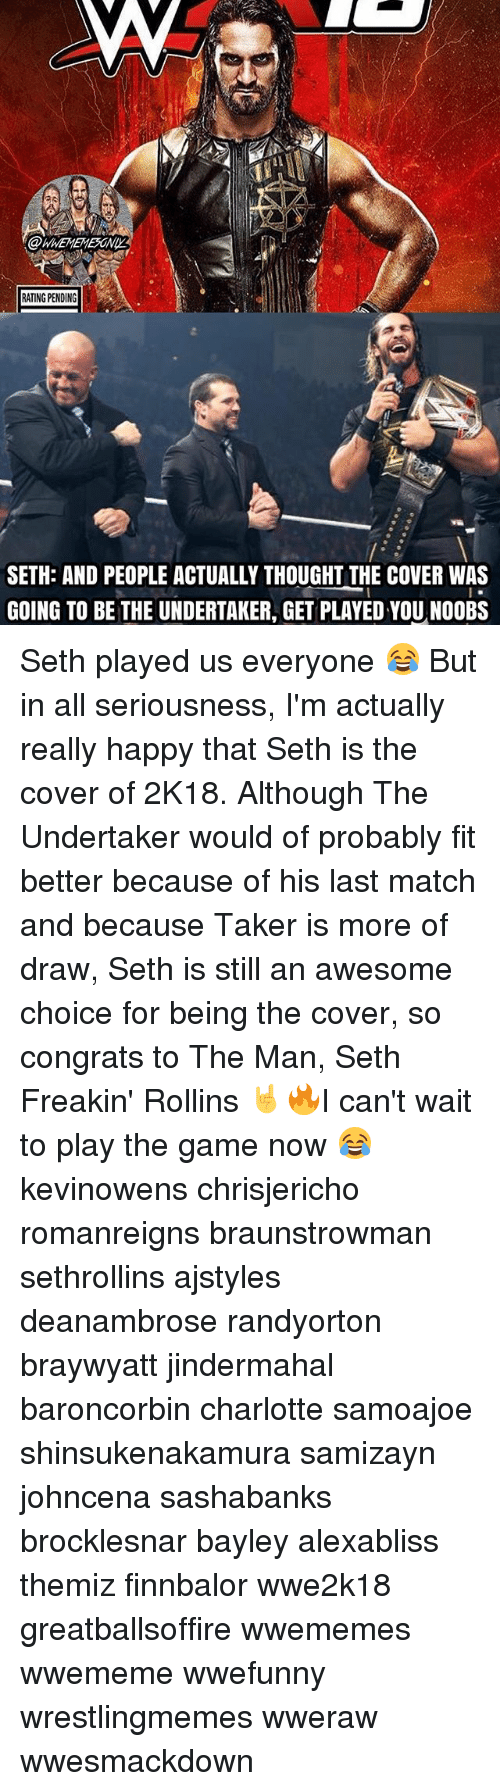 The Undertaker: RATING PENDING  SETH: AND PEOPLE ACTUALLY THOUGHT THE COVER WAS  GOING TO BE THE UNDERTAKER, GET PLAYED YOUNOOBS Seth played us everyone 😂 But in all seriousness, I'm actually really happy that Seth is the cover of 2K18. Although The Undertaker would of probably fit better because of his last match and because Taker is more of draw, Seth is still an awesome choice for being the cover, so congrats to The Man, Seth Freakin' Rollins 🤘🔥I can't wait to play the game now 😂 kevinowens chrisjericho romanreigns braunstrowman sethrollins ajstyles deanambrose randyorton braywyatt jindermahal baroncorbin charlotte samoajoe shinsukenakamura samizayn johncena sashabanks brocklesnar bayley alexabliss themiz finnbalor wwe2k18 greatballsoffire wwememes wwememe wwefunny wrestlingmemes wweraw wwesmackdown